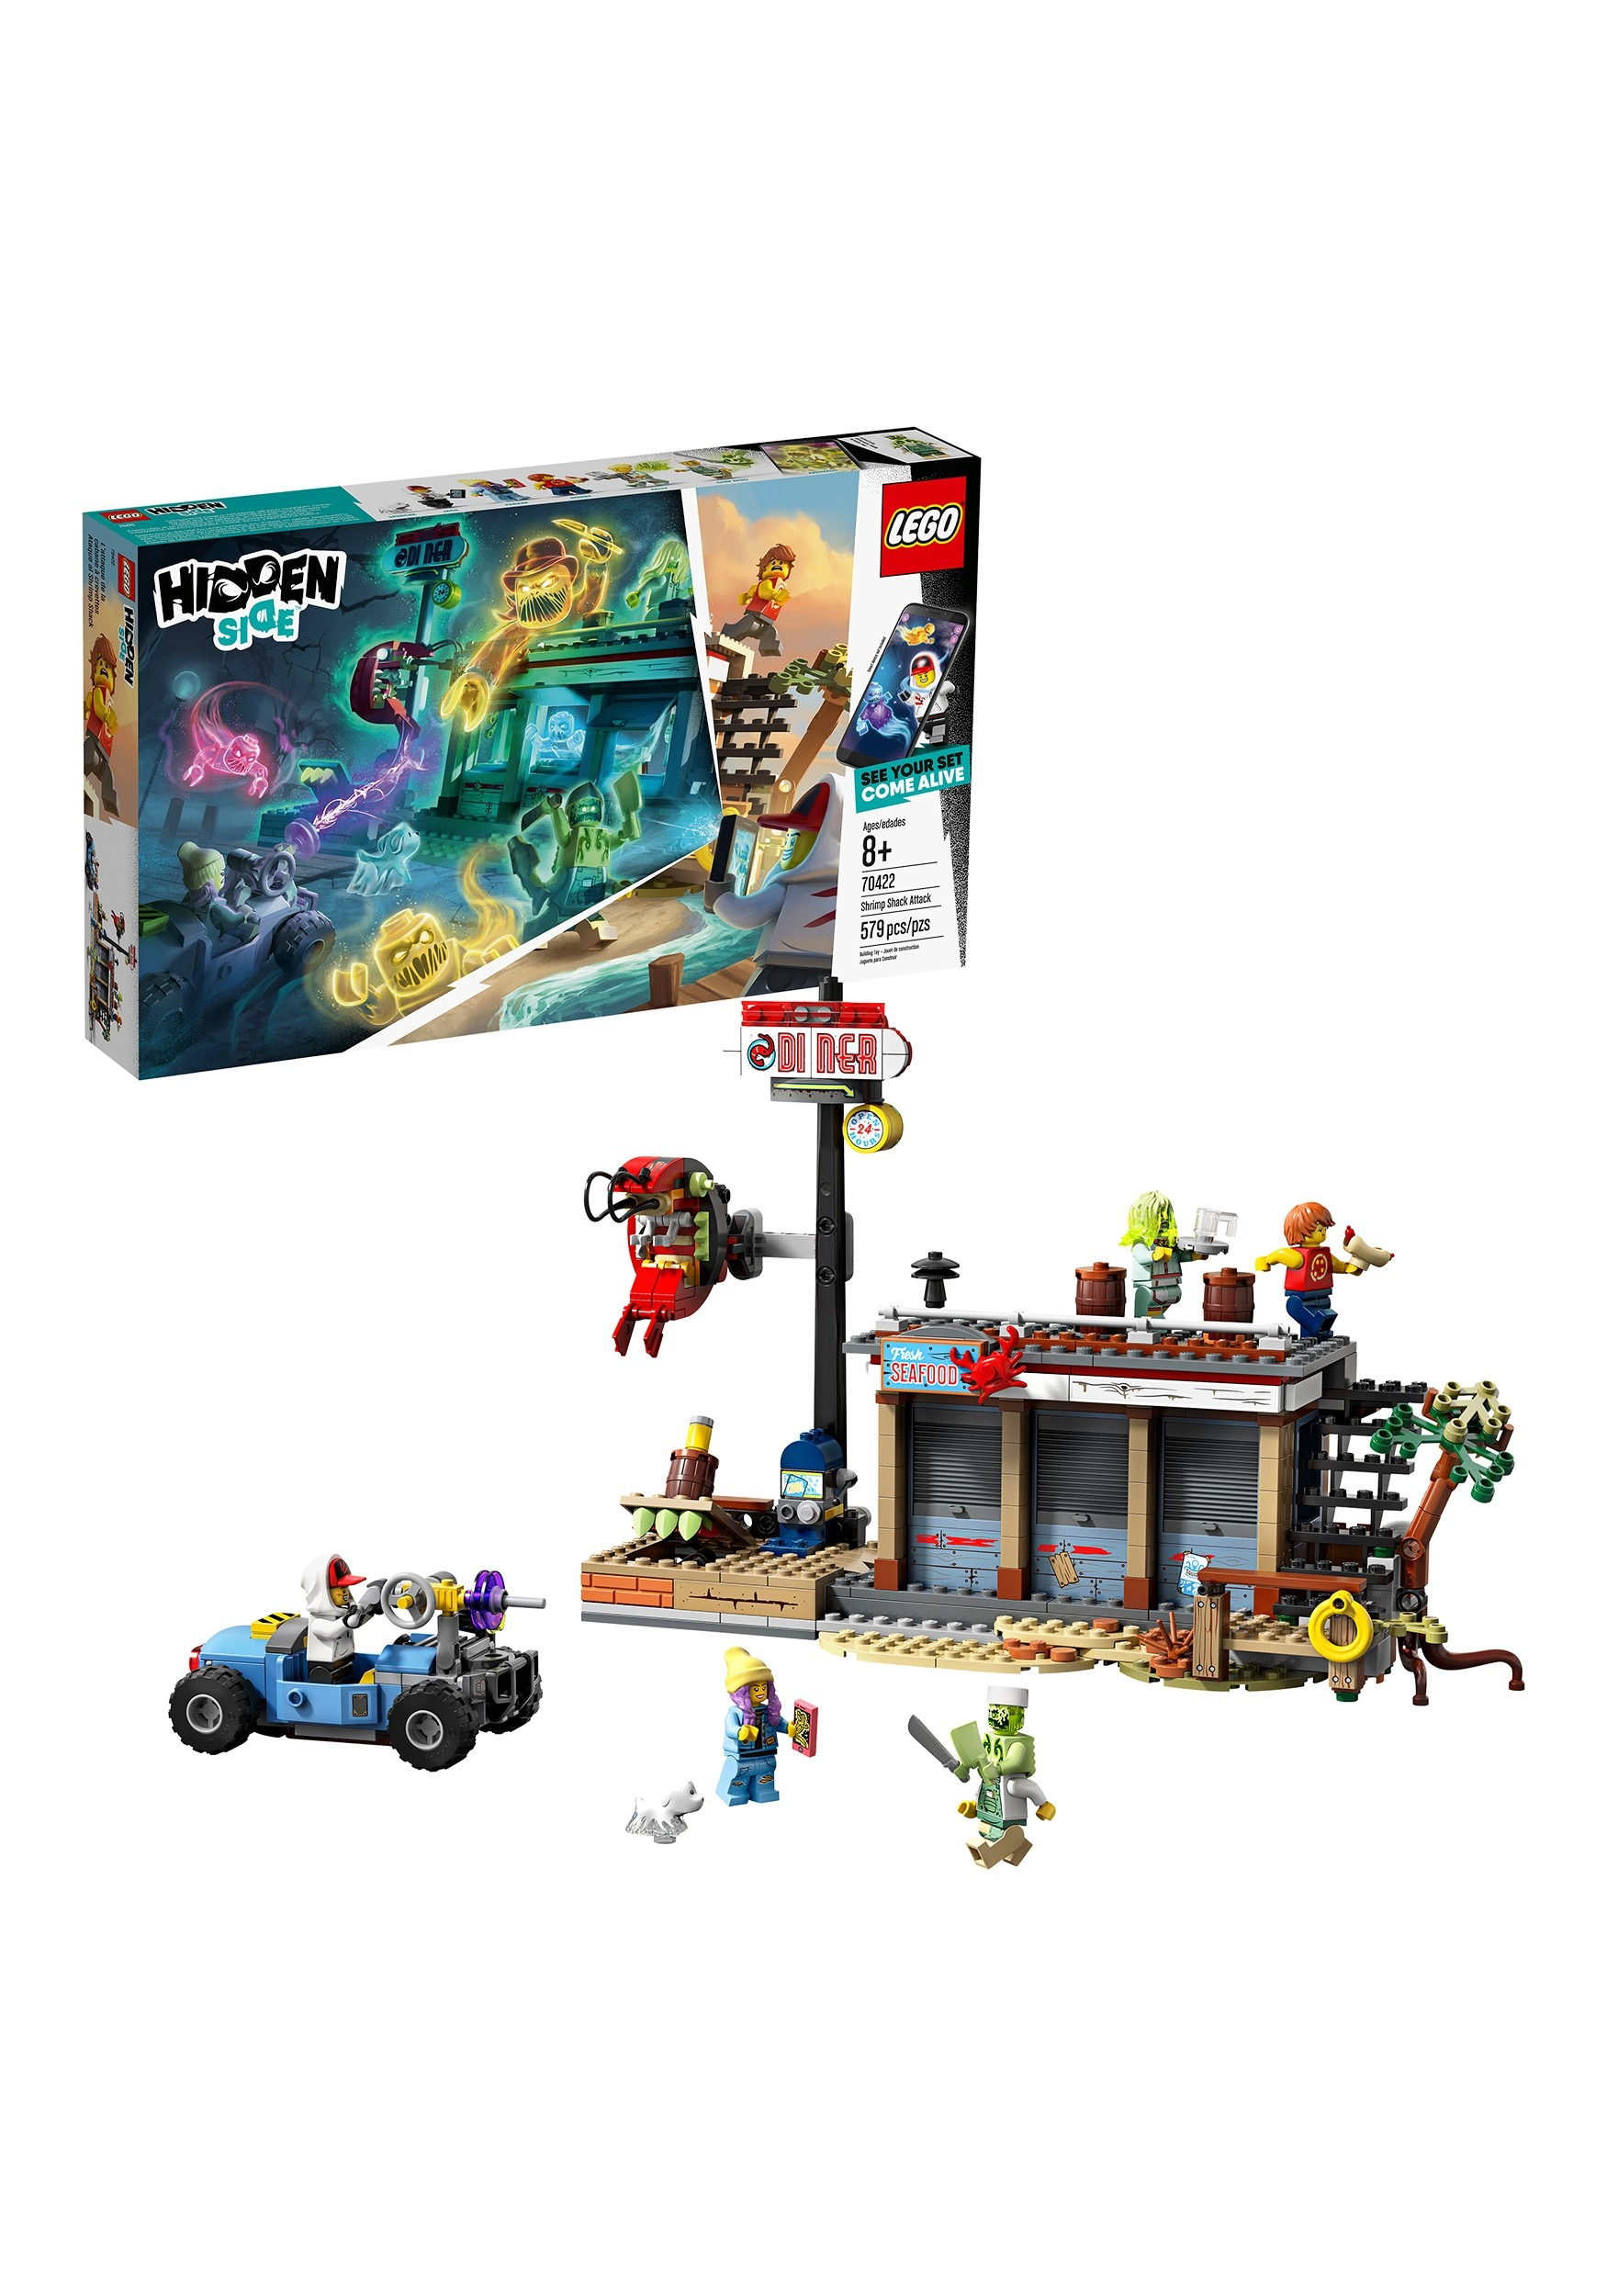 Shrimp Shack Attack LEGO Hidden Side Building Set